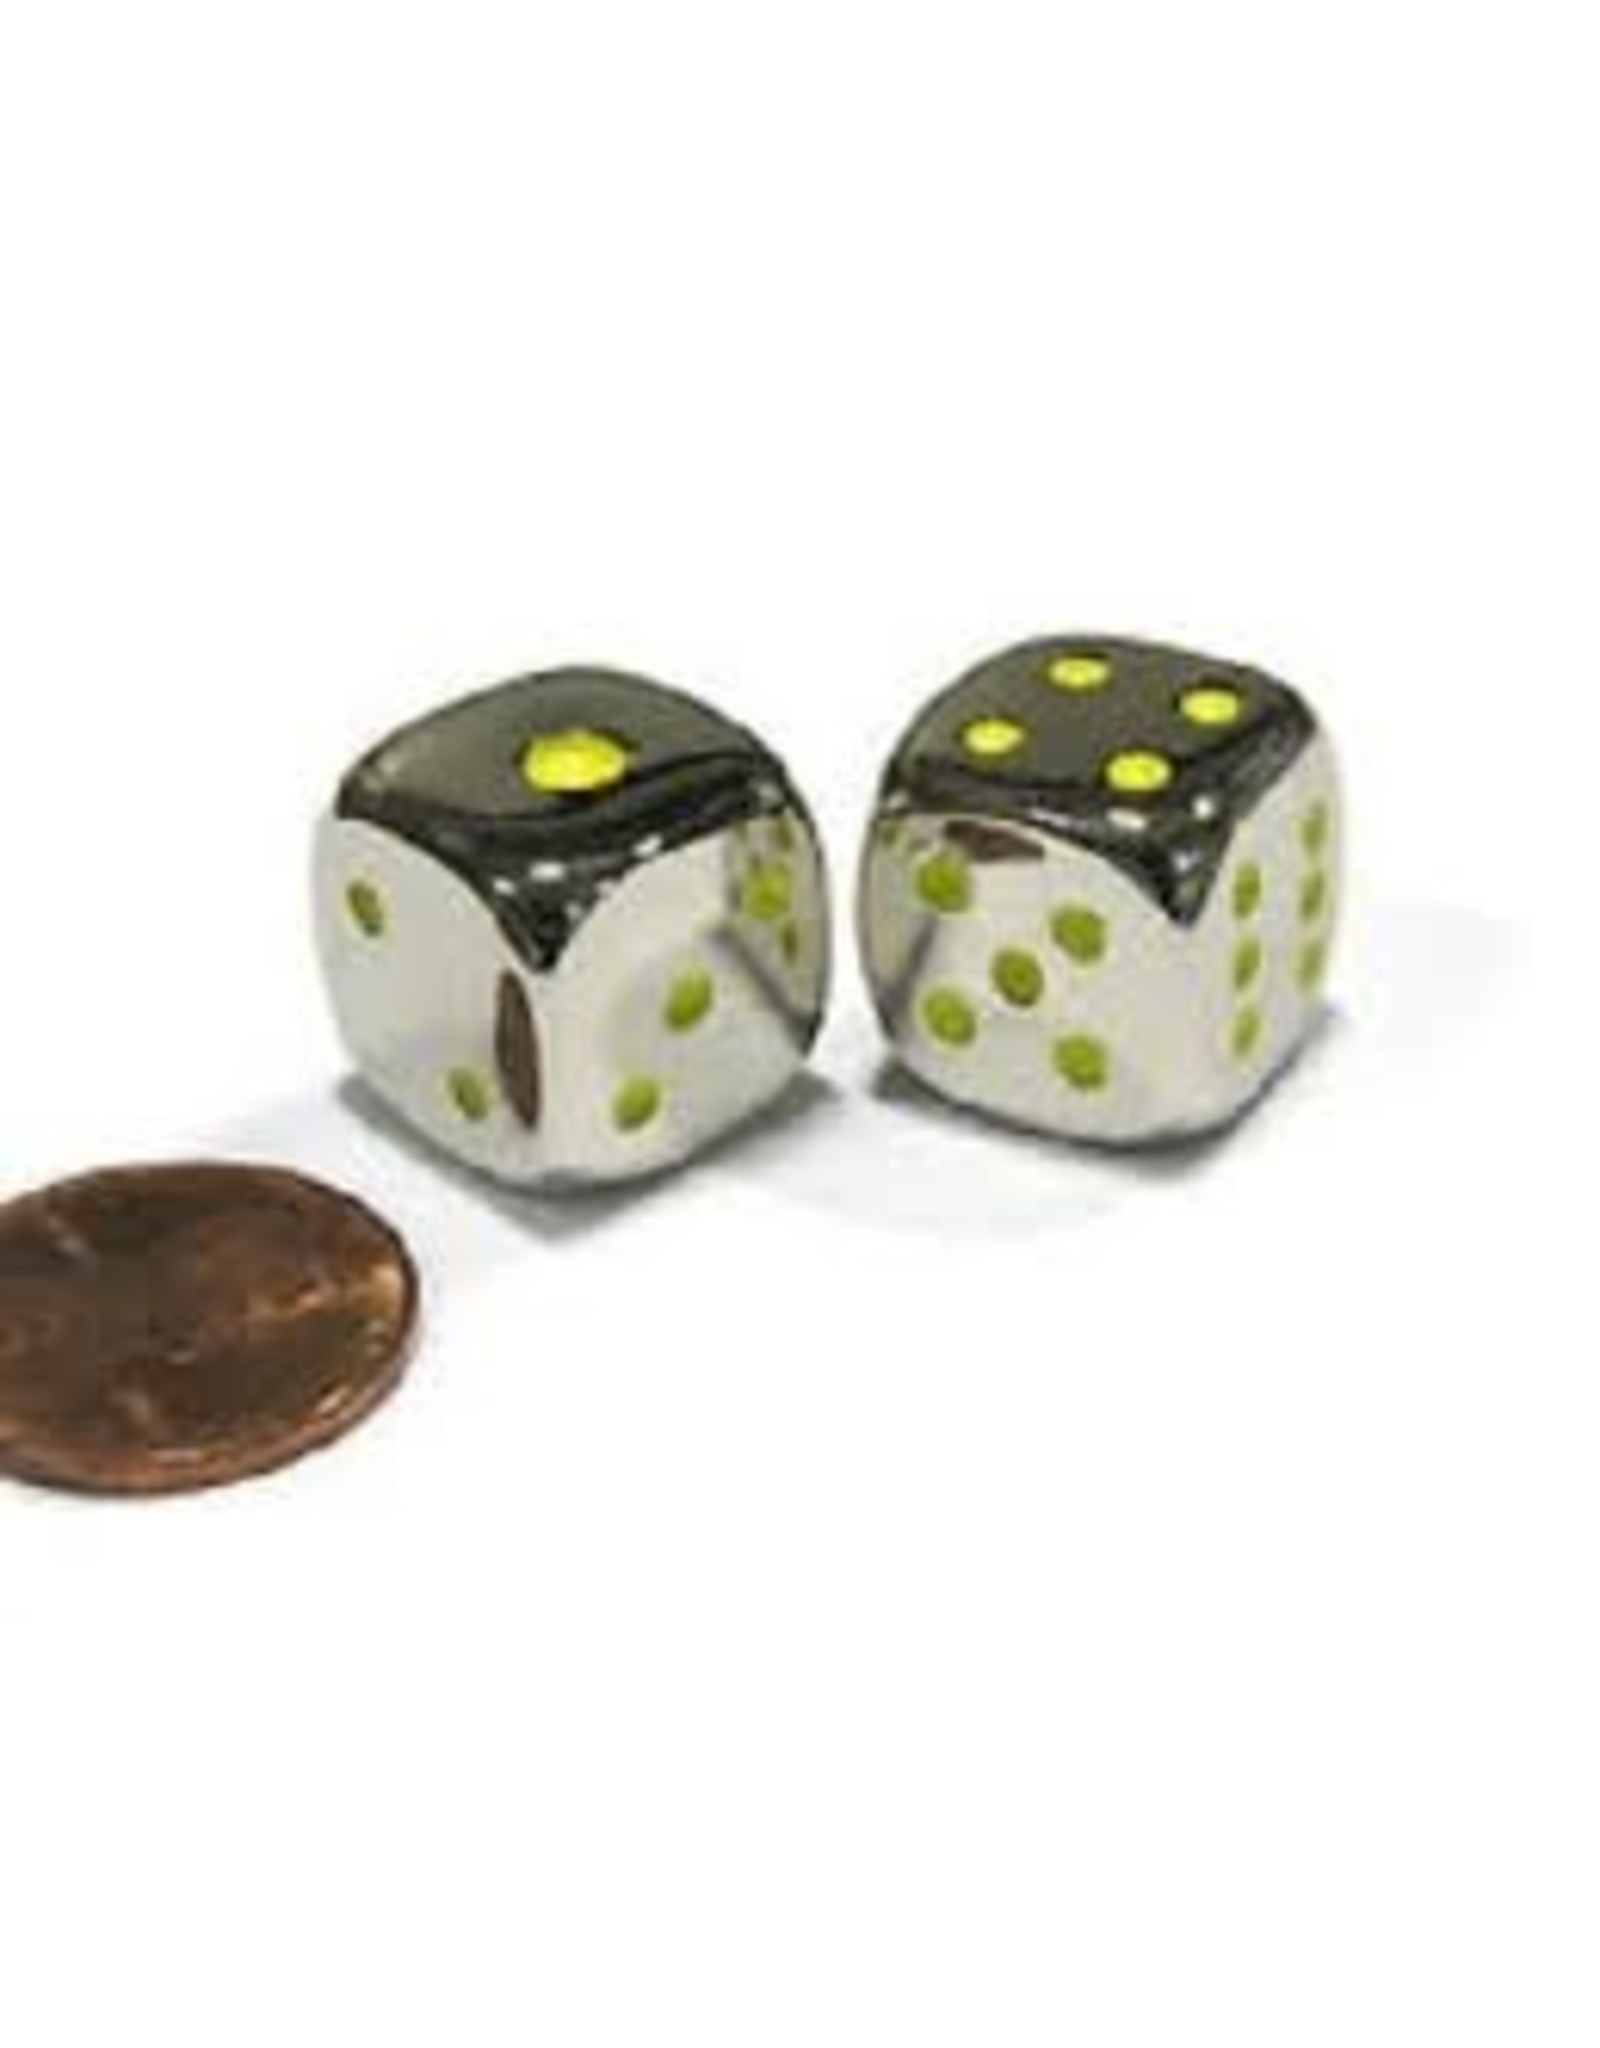 Koplow Metal Dice - Green Pips (15mm)